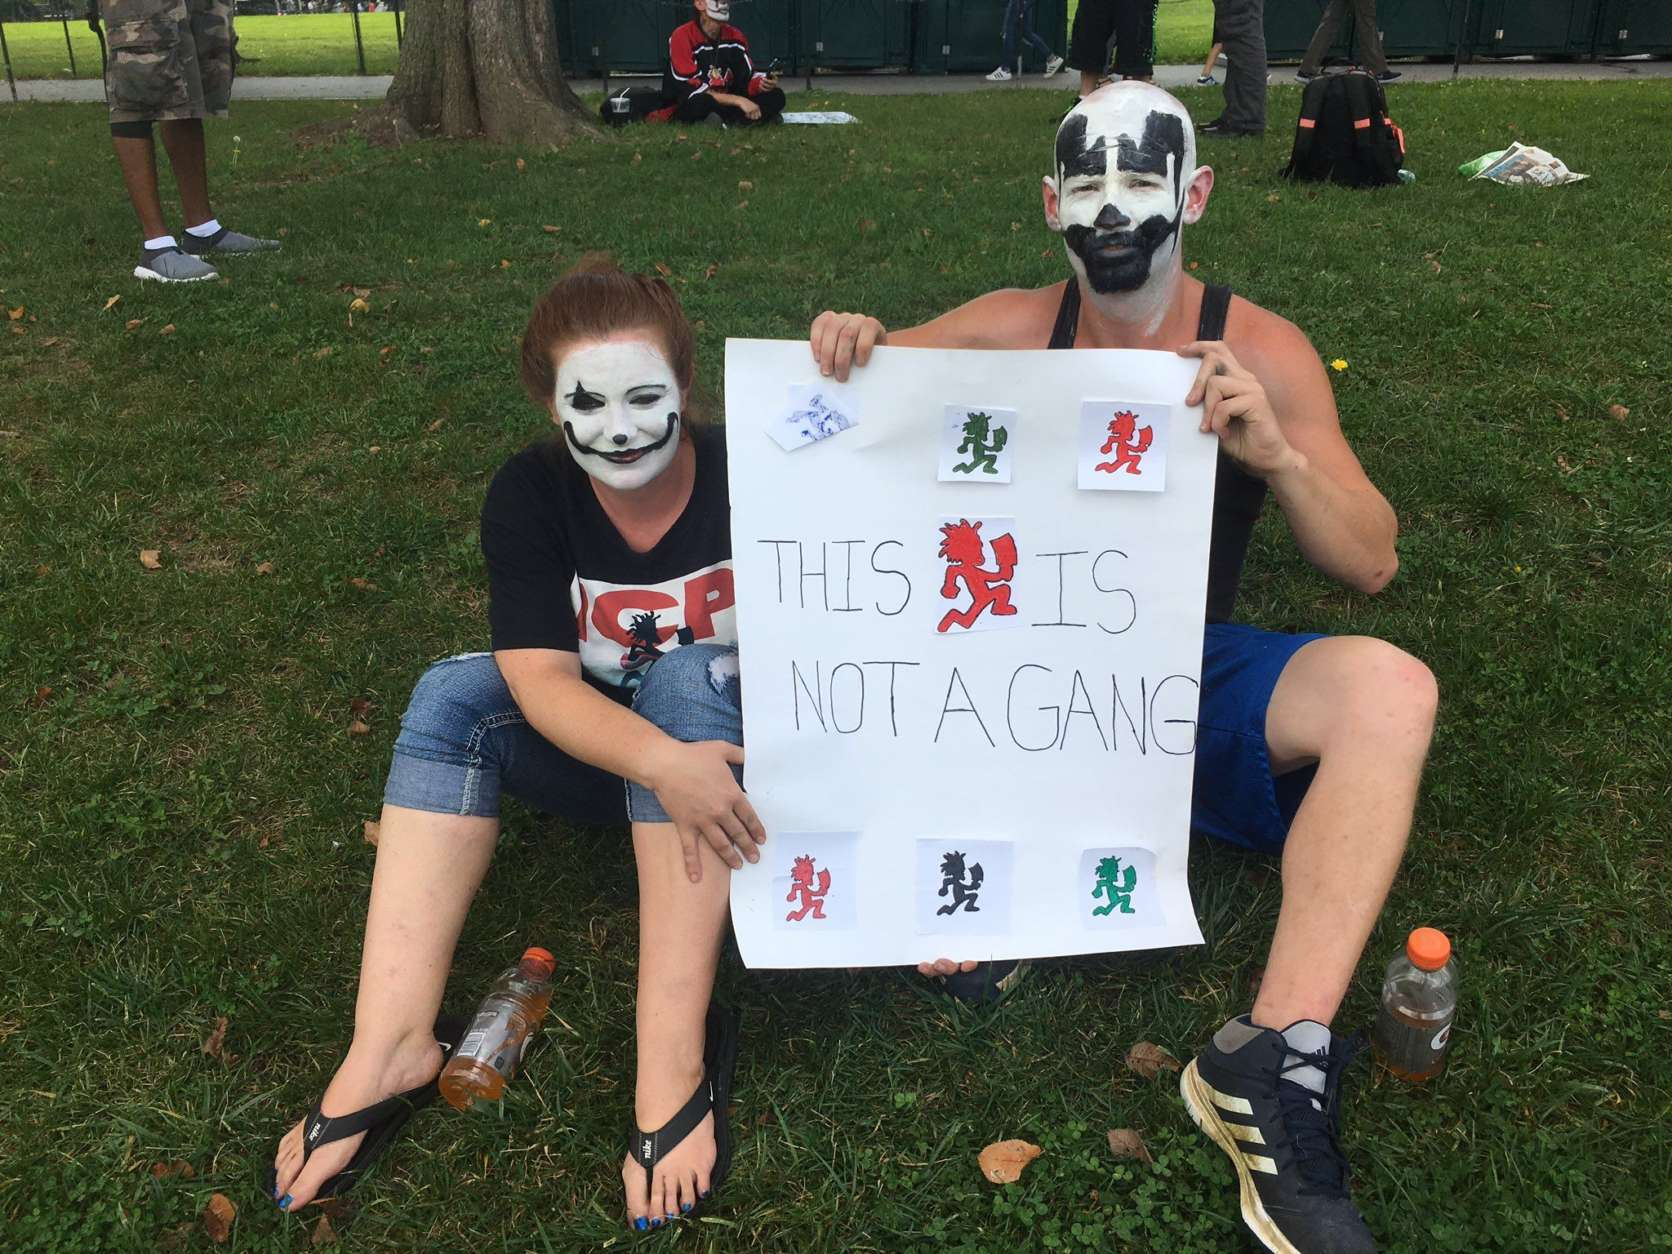 Fans of a the band @icp gather at Lincoln Memorial for rally and march against the FBI's classification of them as a gang. (WTOP/Mike Murillo)